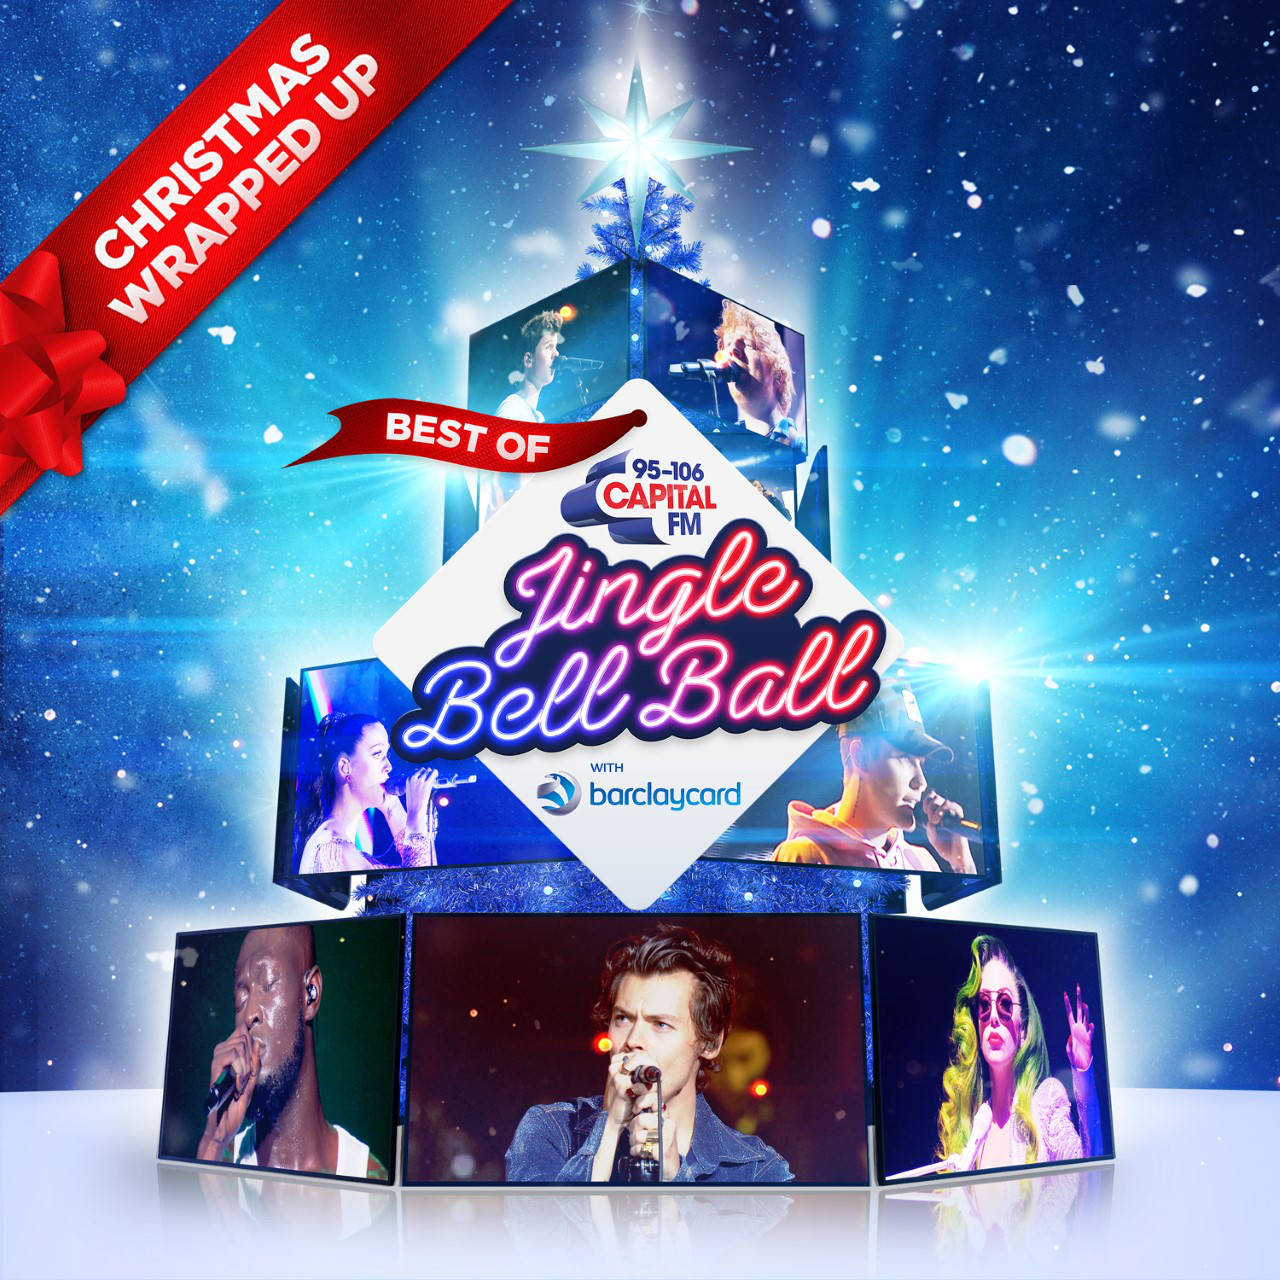 Capital's Best of the Jingle Bell Ball image